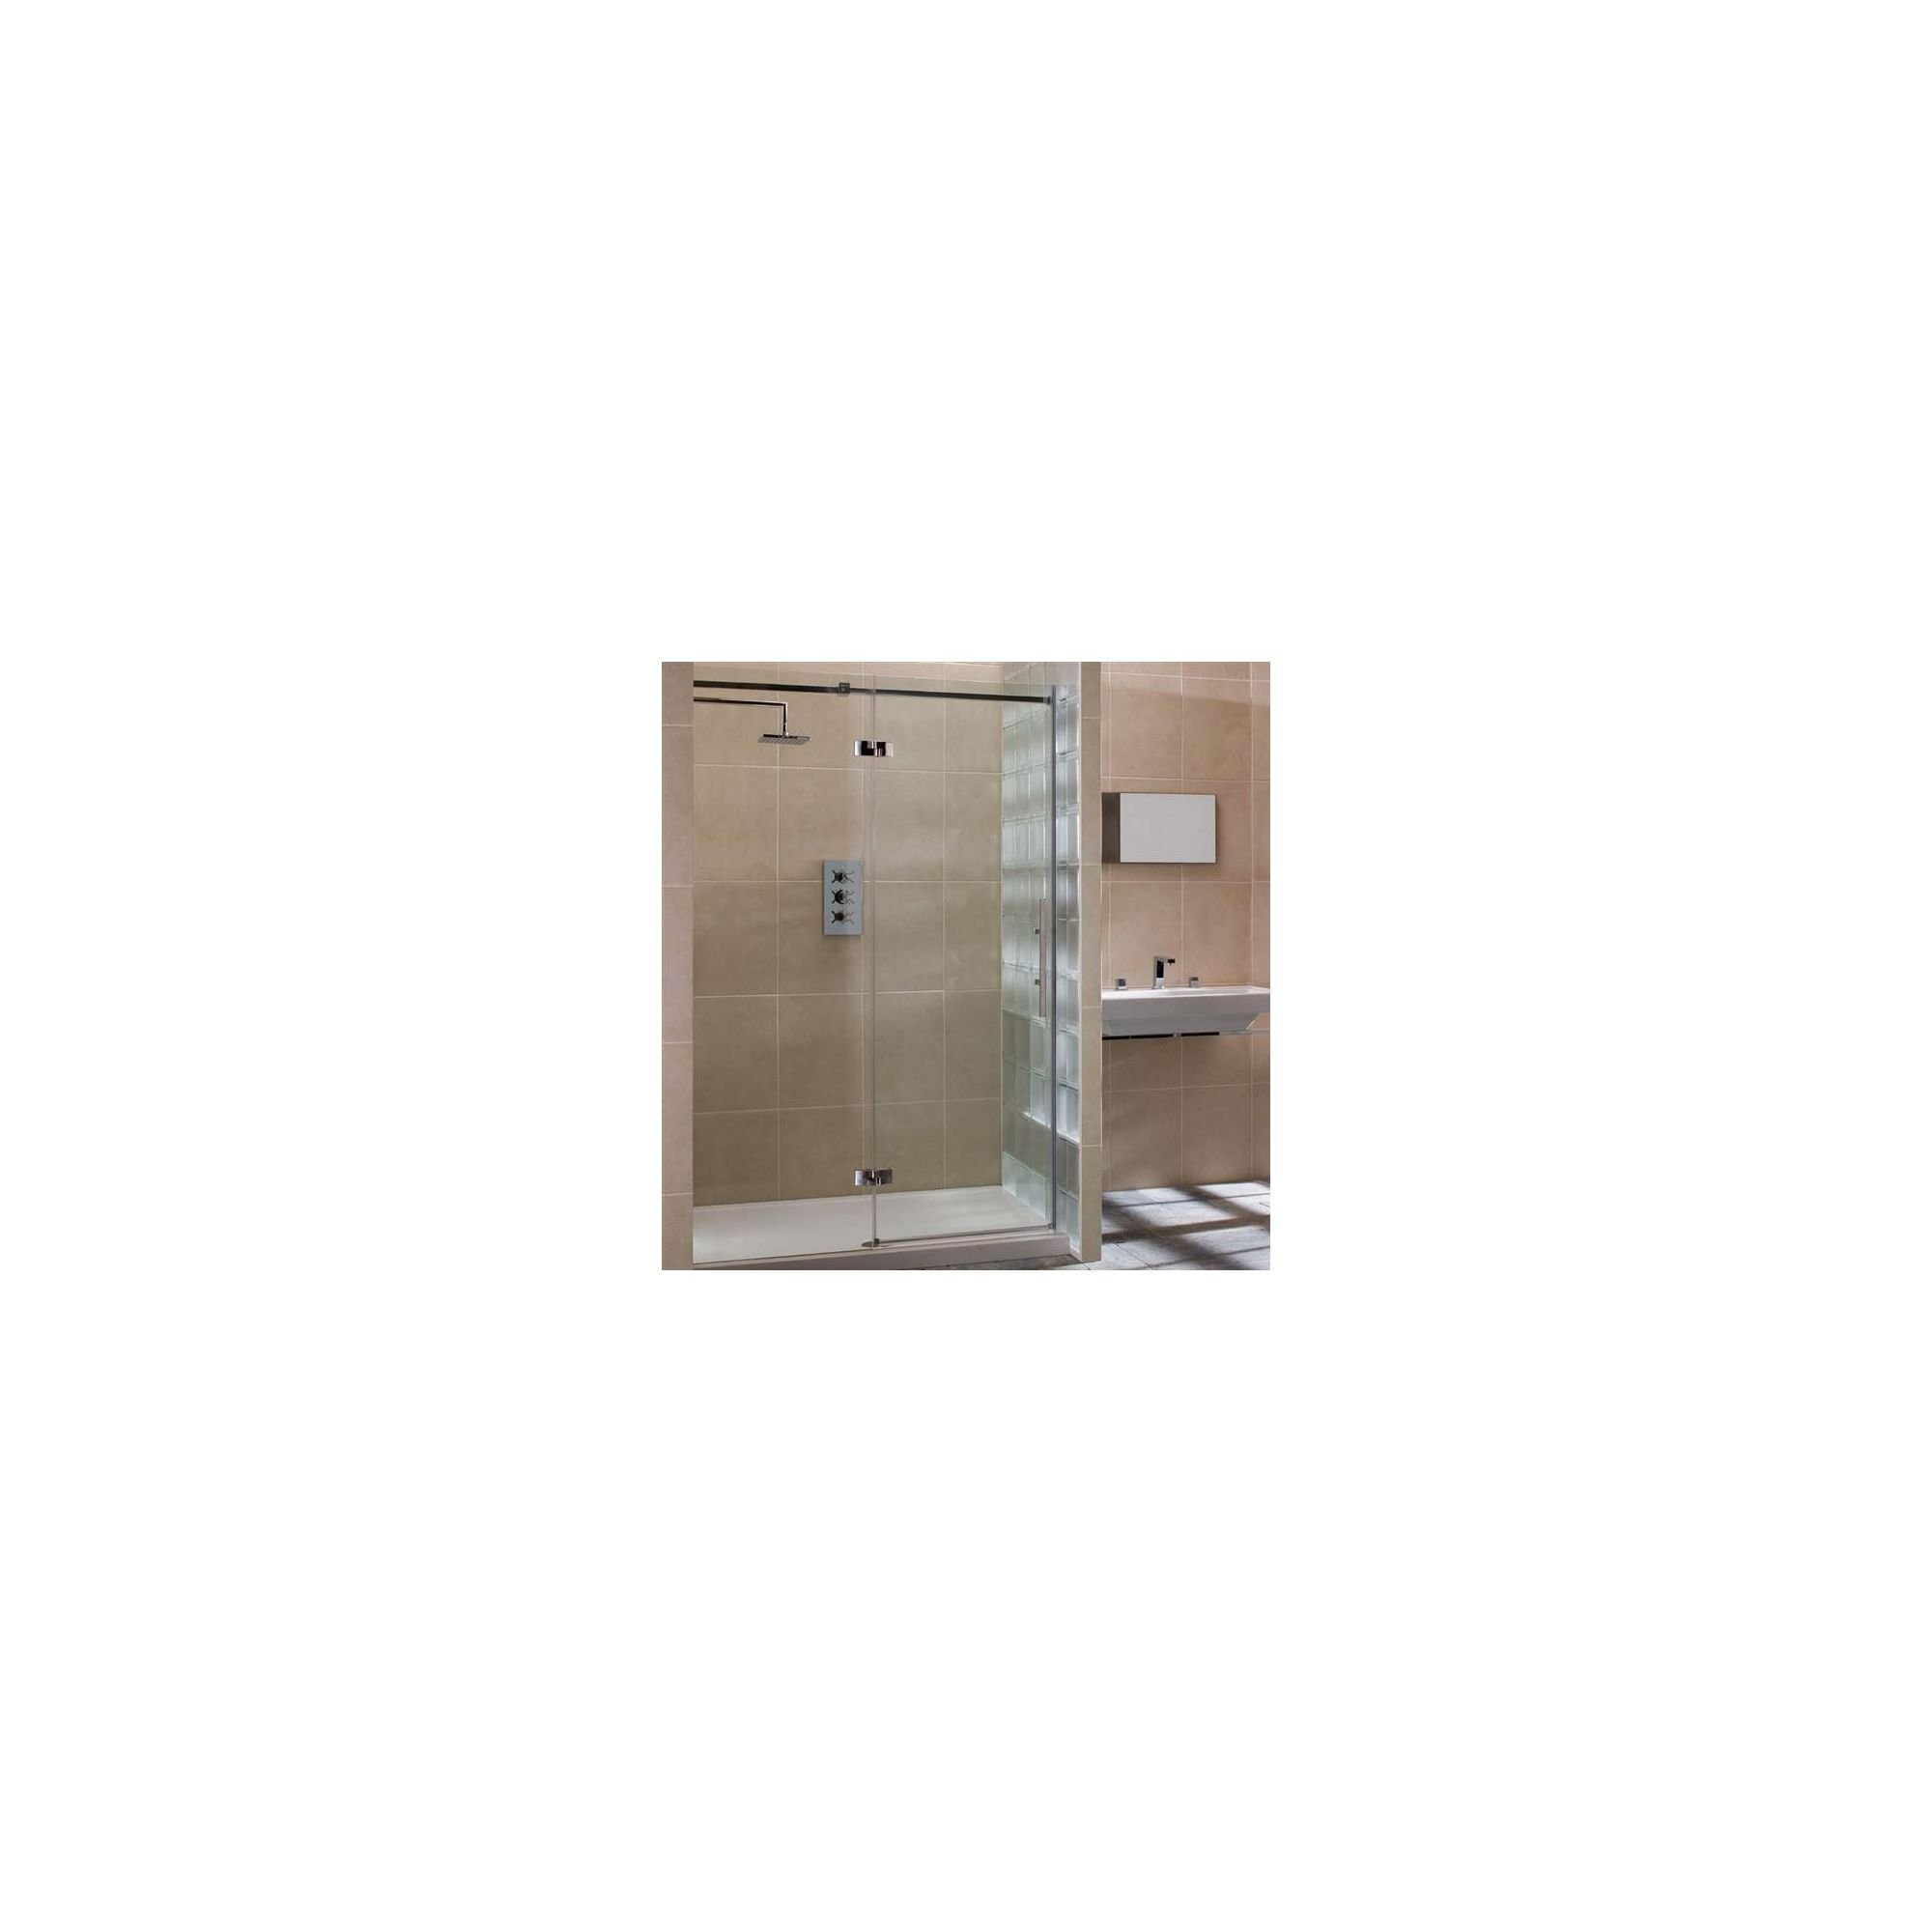 Merlyn Vivid Nine Hinged Door Alcove Shower Enclosure with Inline Panel, 1200mm x 900mm, Left Handed, Low Profile Tray, 8mm Glass at Tesco Direct